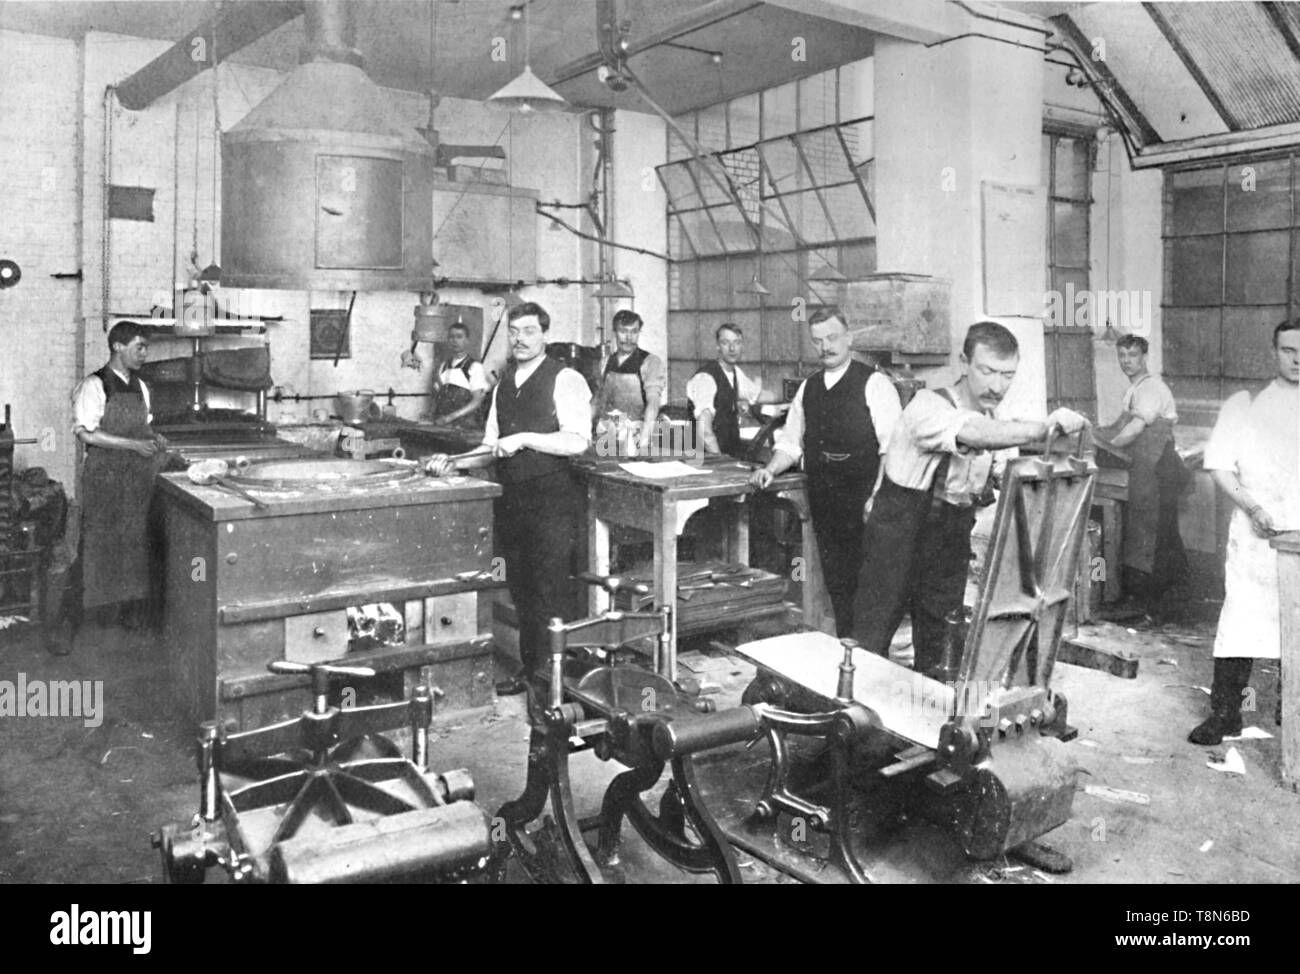 'Dalziel Foundry Limited. - Earl Street Premises. Moulding and Casting Plant, and Staff', 1909. Creator: Fradelle & Young. - Stock Image